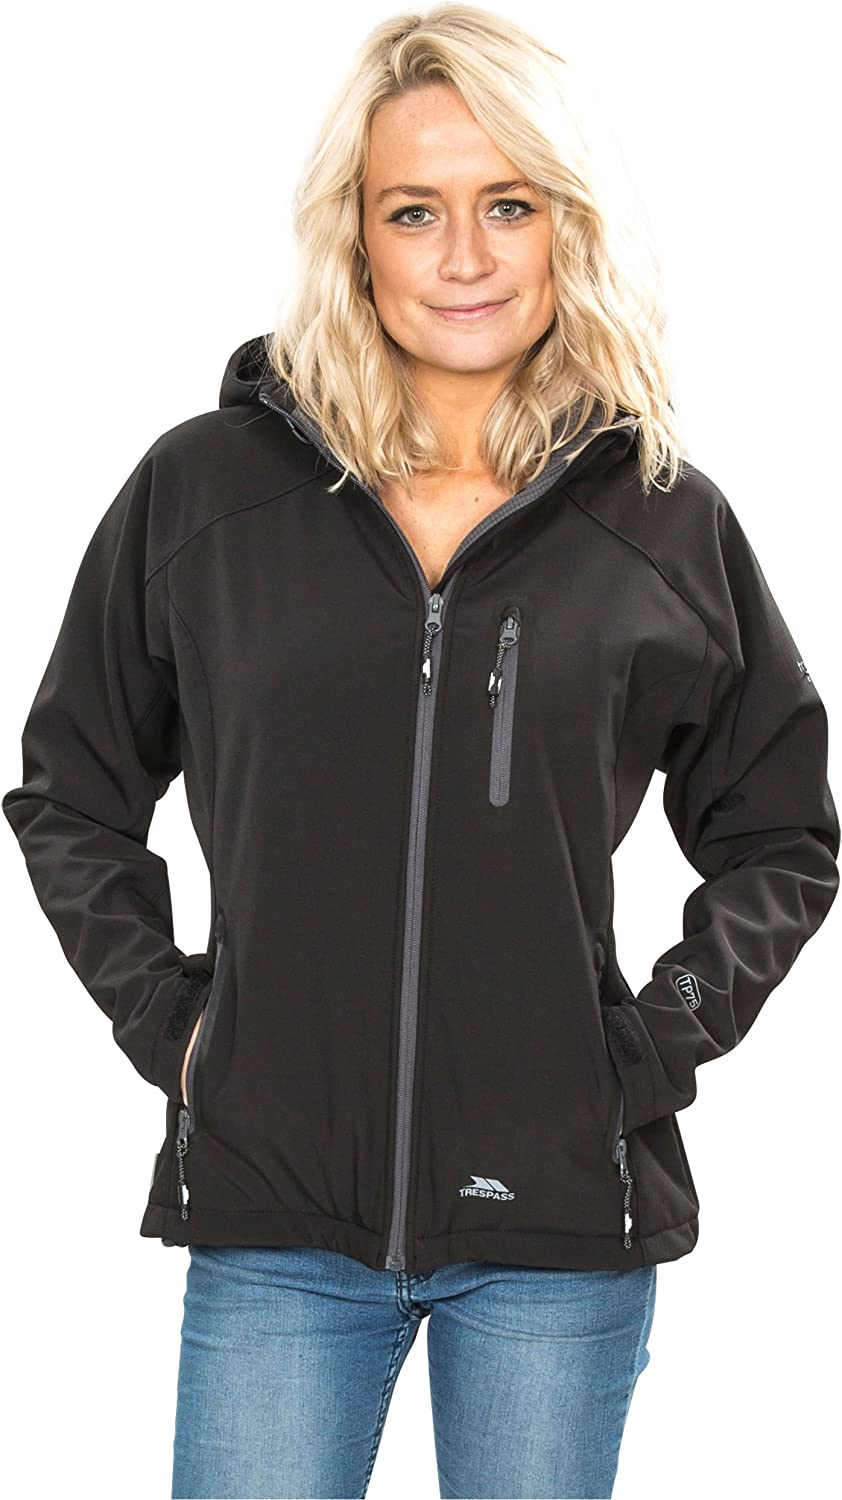 Mujer Trespass Tp75 Bela II Chaqueta Impermeable con Capucha Desmontable